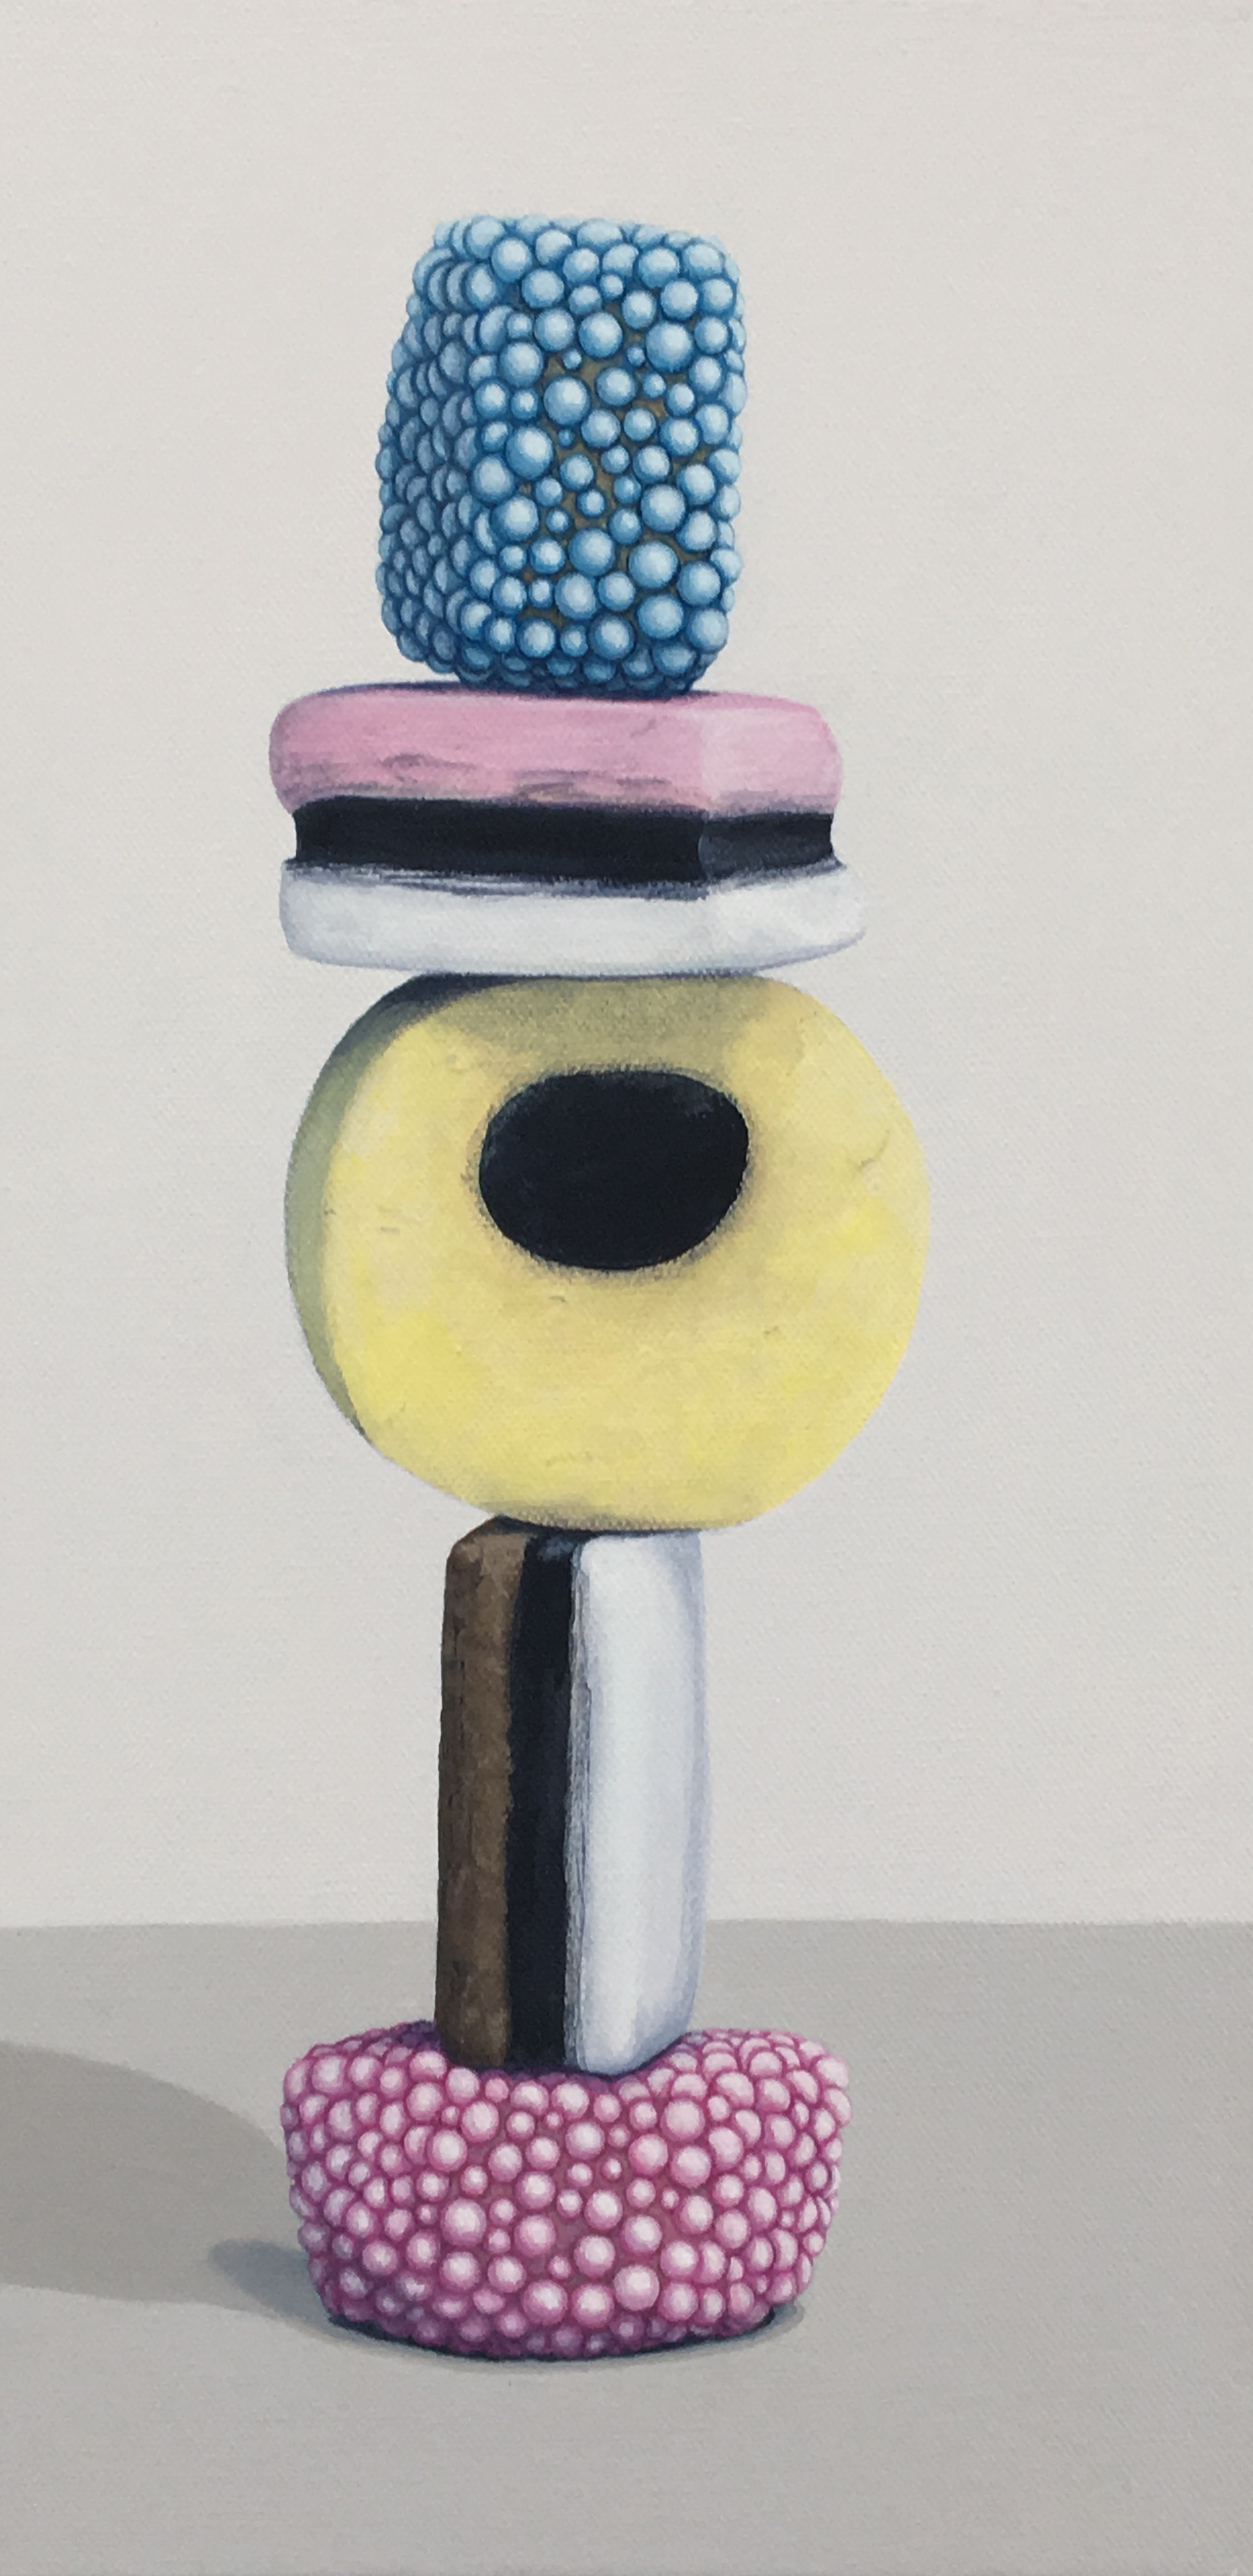 """Totem: Allsorts III   This enticing candy stacks is a delightful temptation. As a culture we are generally attracted to these charming colors and interesting shapes, but once the candy is experienced as a food there is often a mismatch between its attractiveness and its taste. This work explores the occurrence of the incongruity of appearance and experience.   Currently available through Simon Breitbard Fine Arts   http://sbfinearts.com ,  415-951-1969   8"""" x 16"""" gallery wrapped canvas  $400.00"""